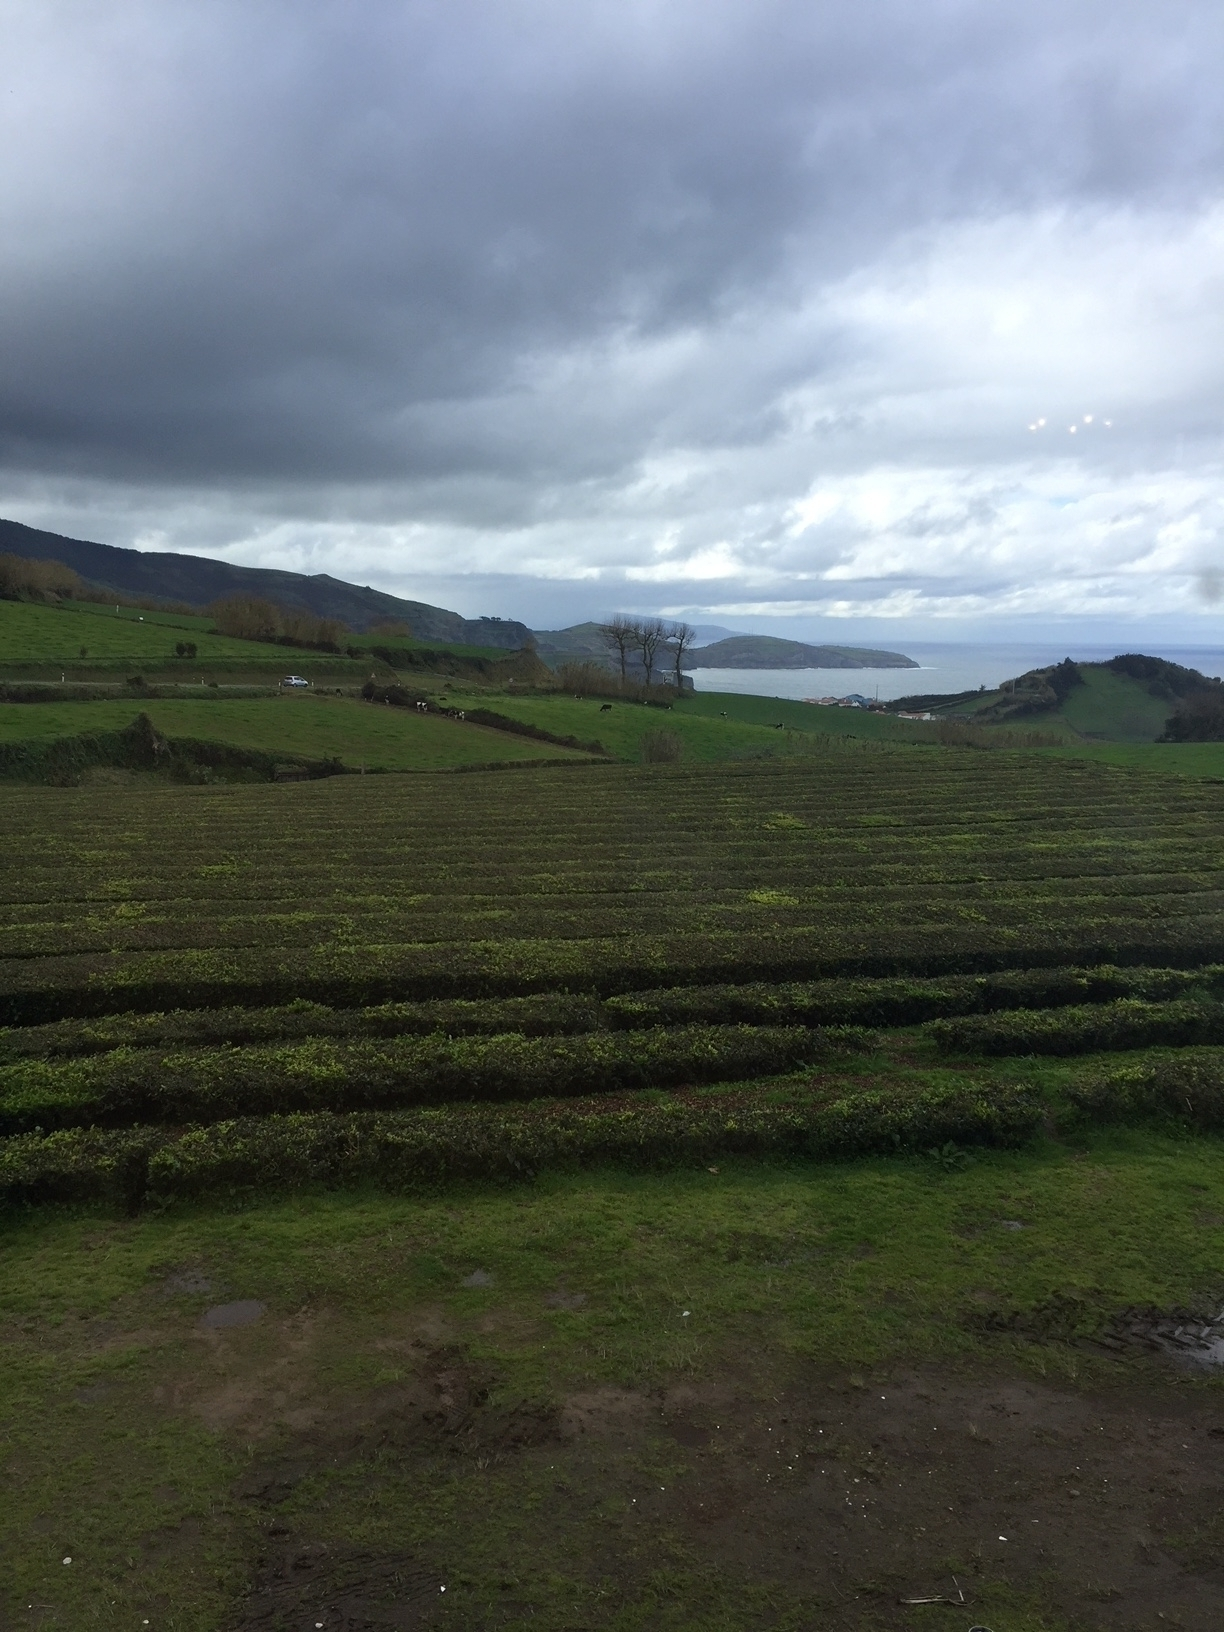 Tea (Camelia sinensis L.) plantation in Ribeira grande, São Miguel island (Azores, Portugal). One of the few tea plantations in Western Europe. Photo by Dr. Ana Sanches Silva.